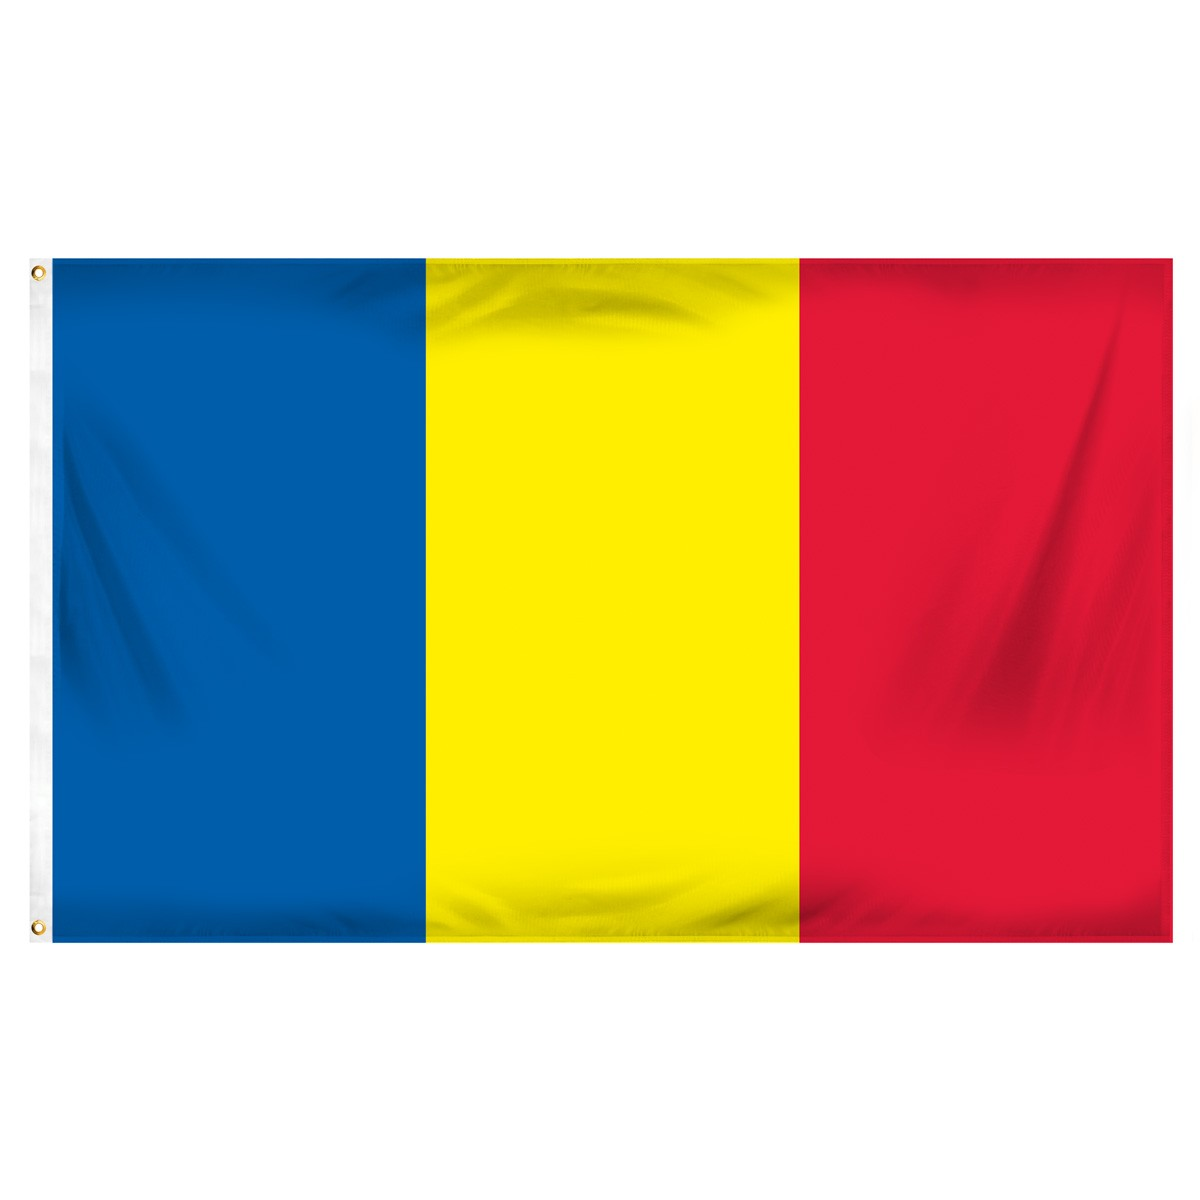 Romania Submit Flags and Flags